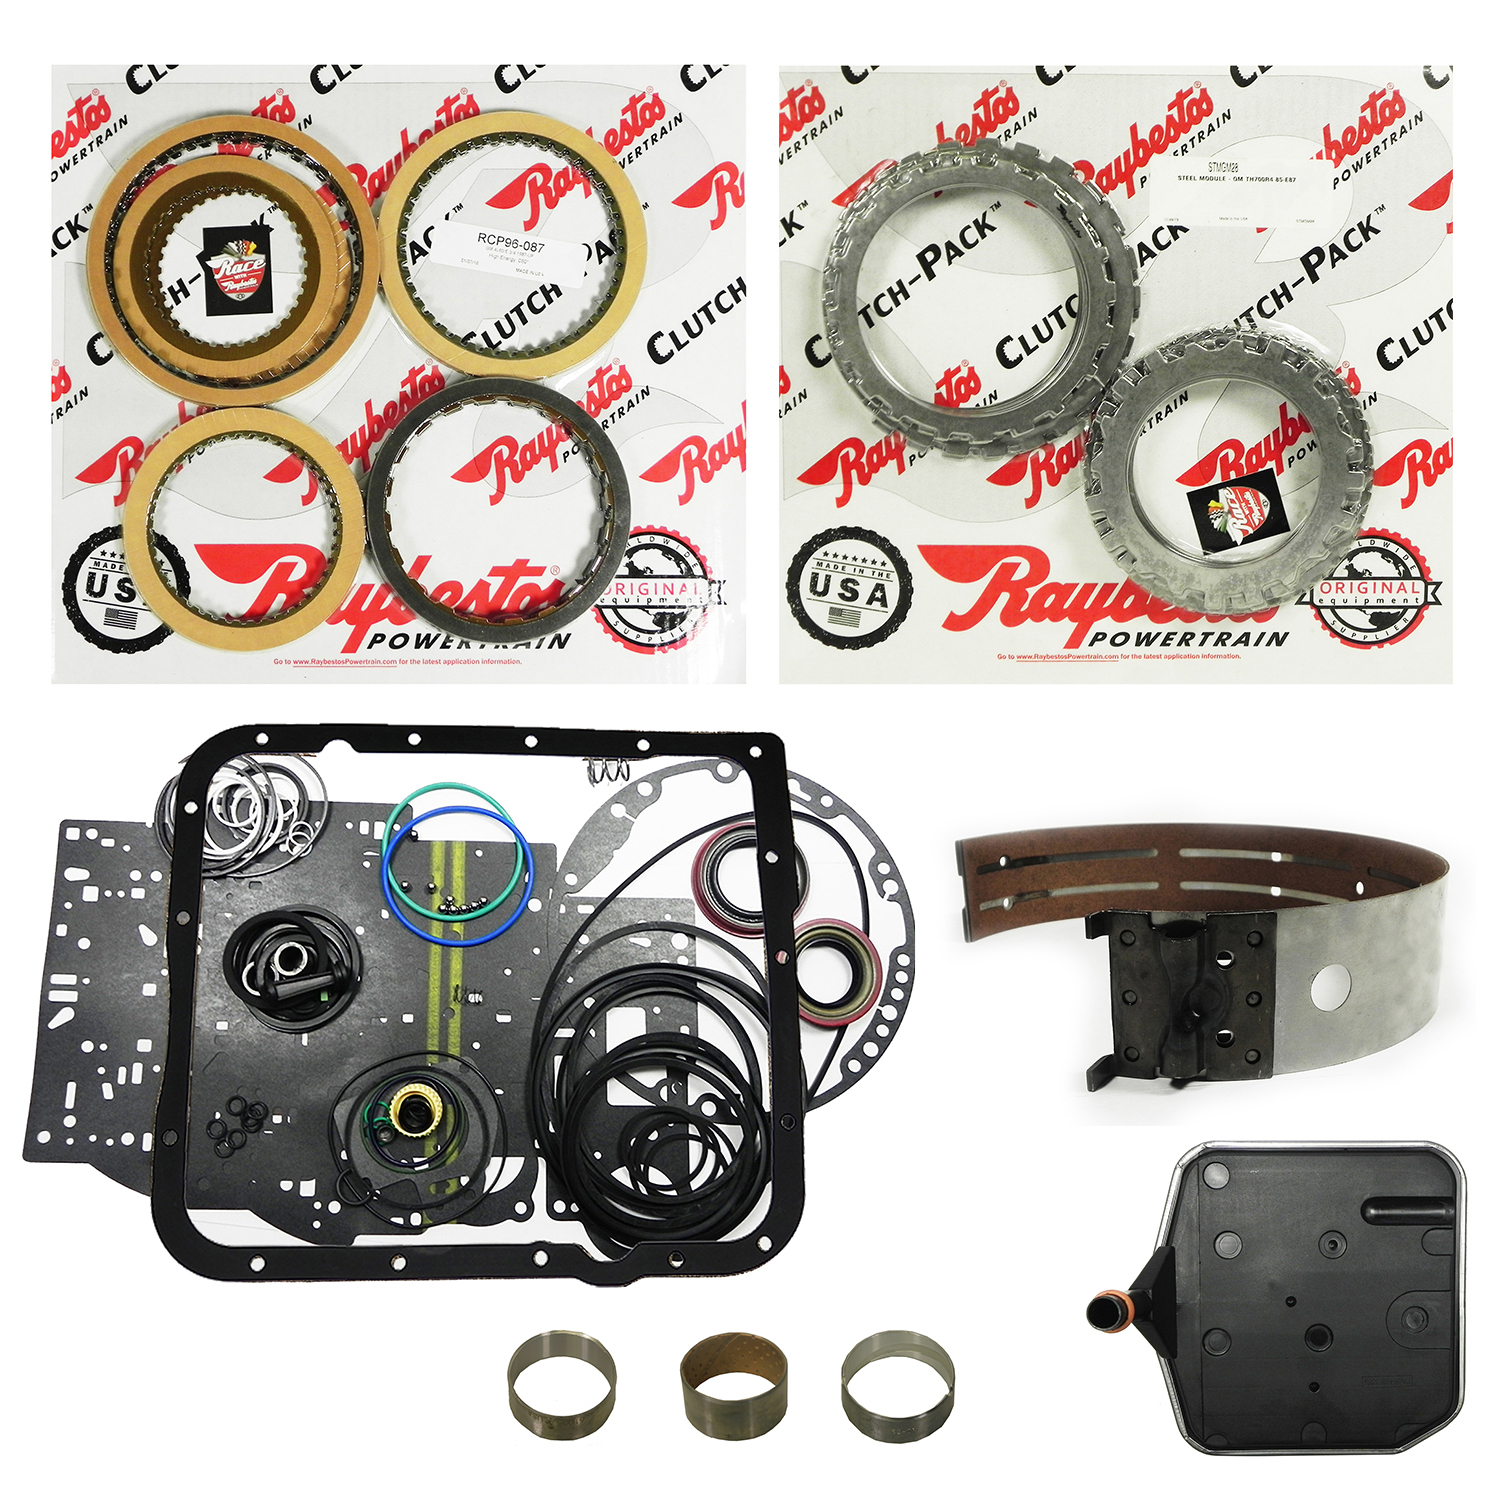 700R4/4L60 Super Rebuild Kit